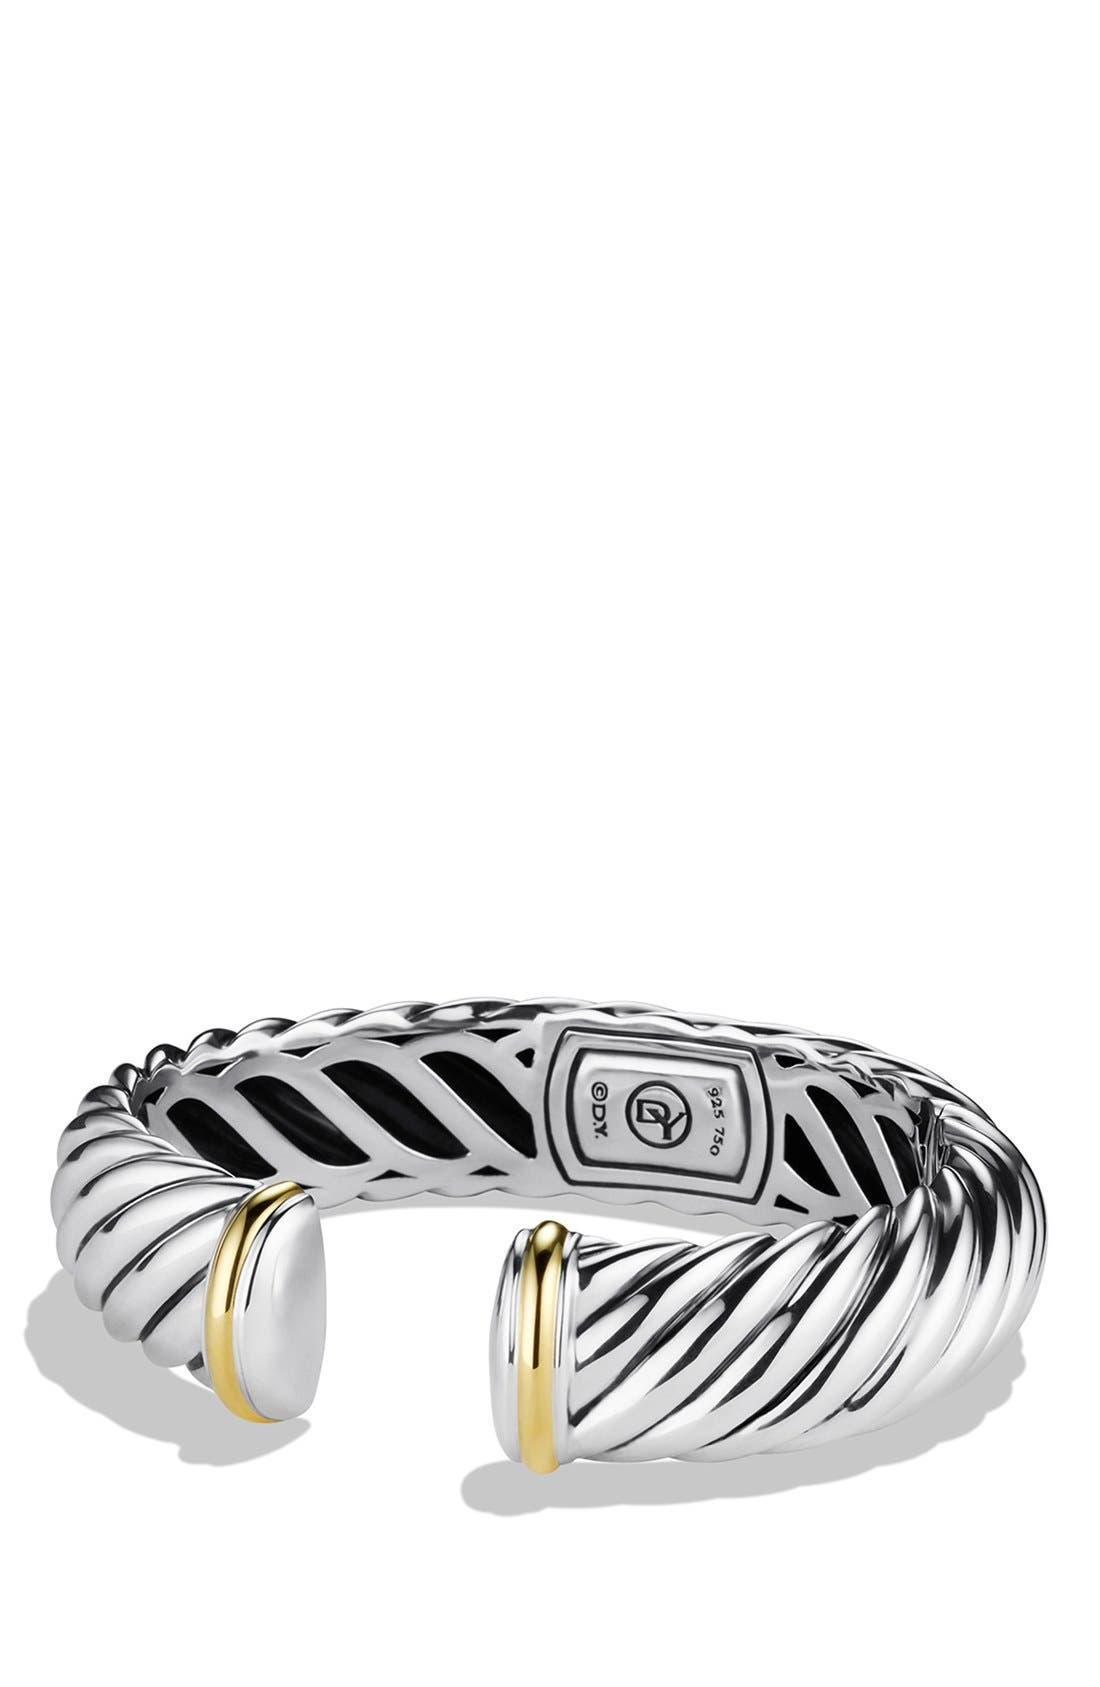 Main Image - David Yurman 'Waverly' Bracelet with Gold